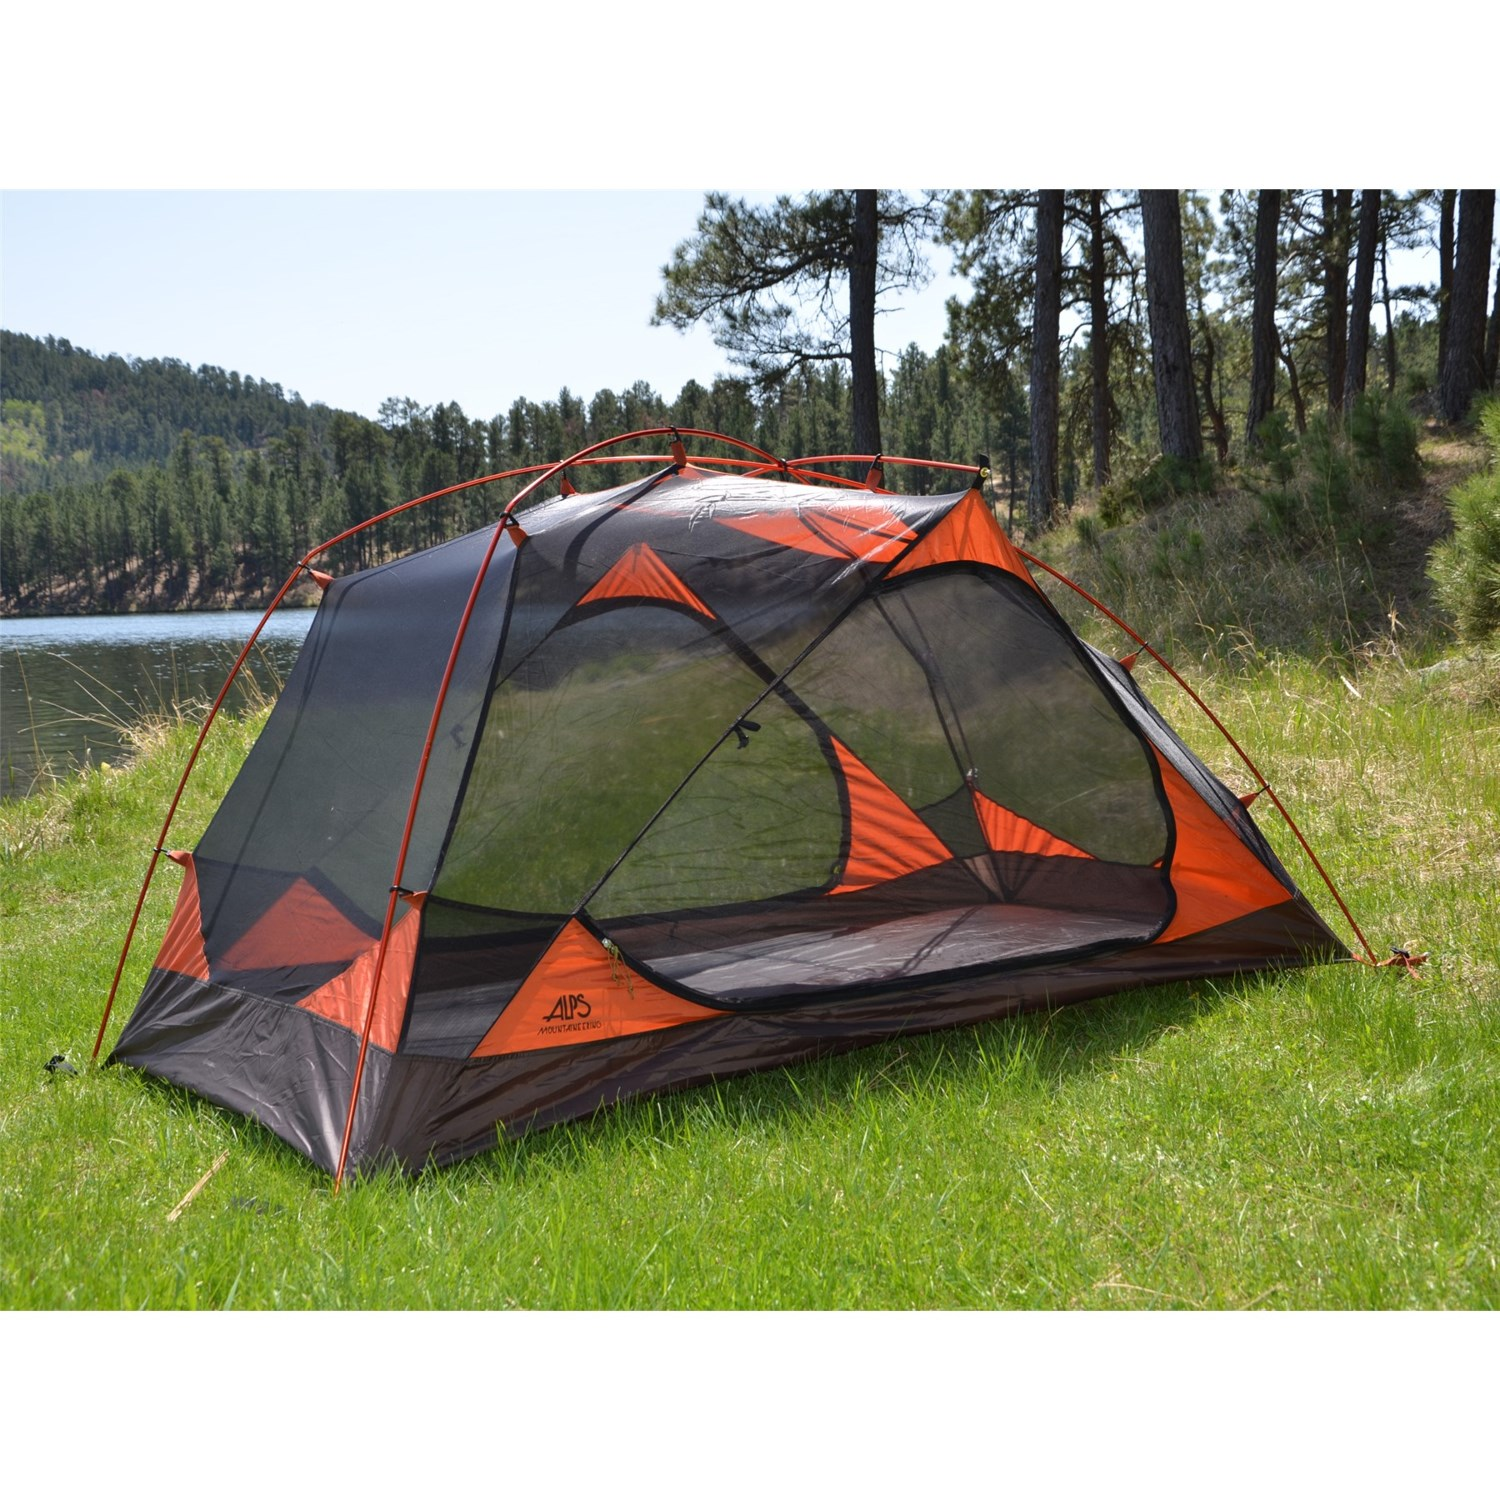 Two Person Tent : Alps mountaineering aries tent person season